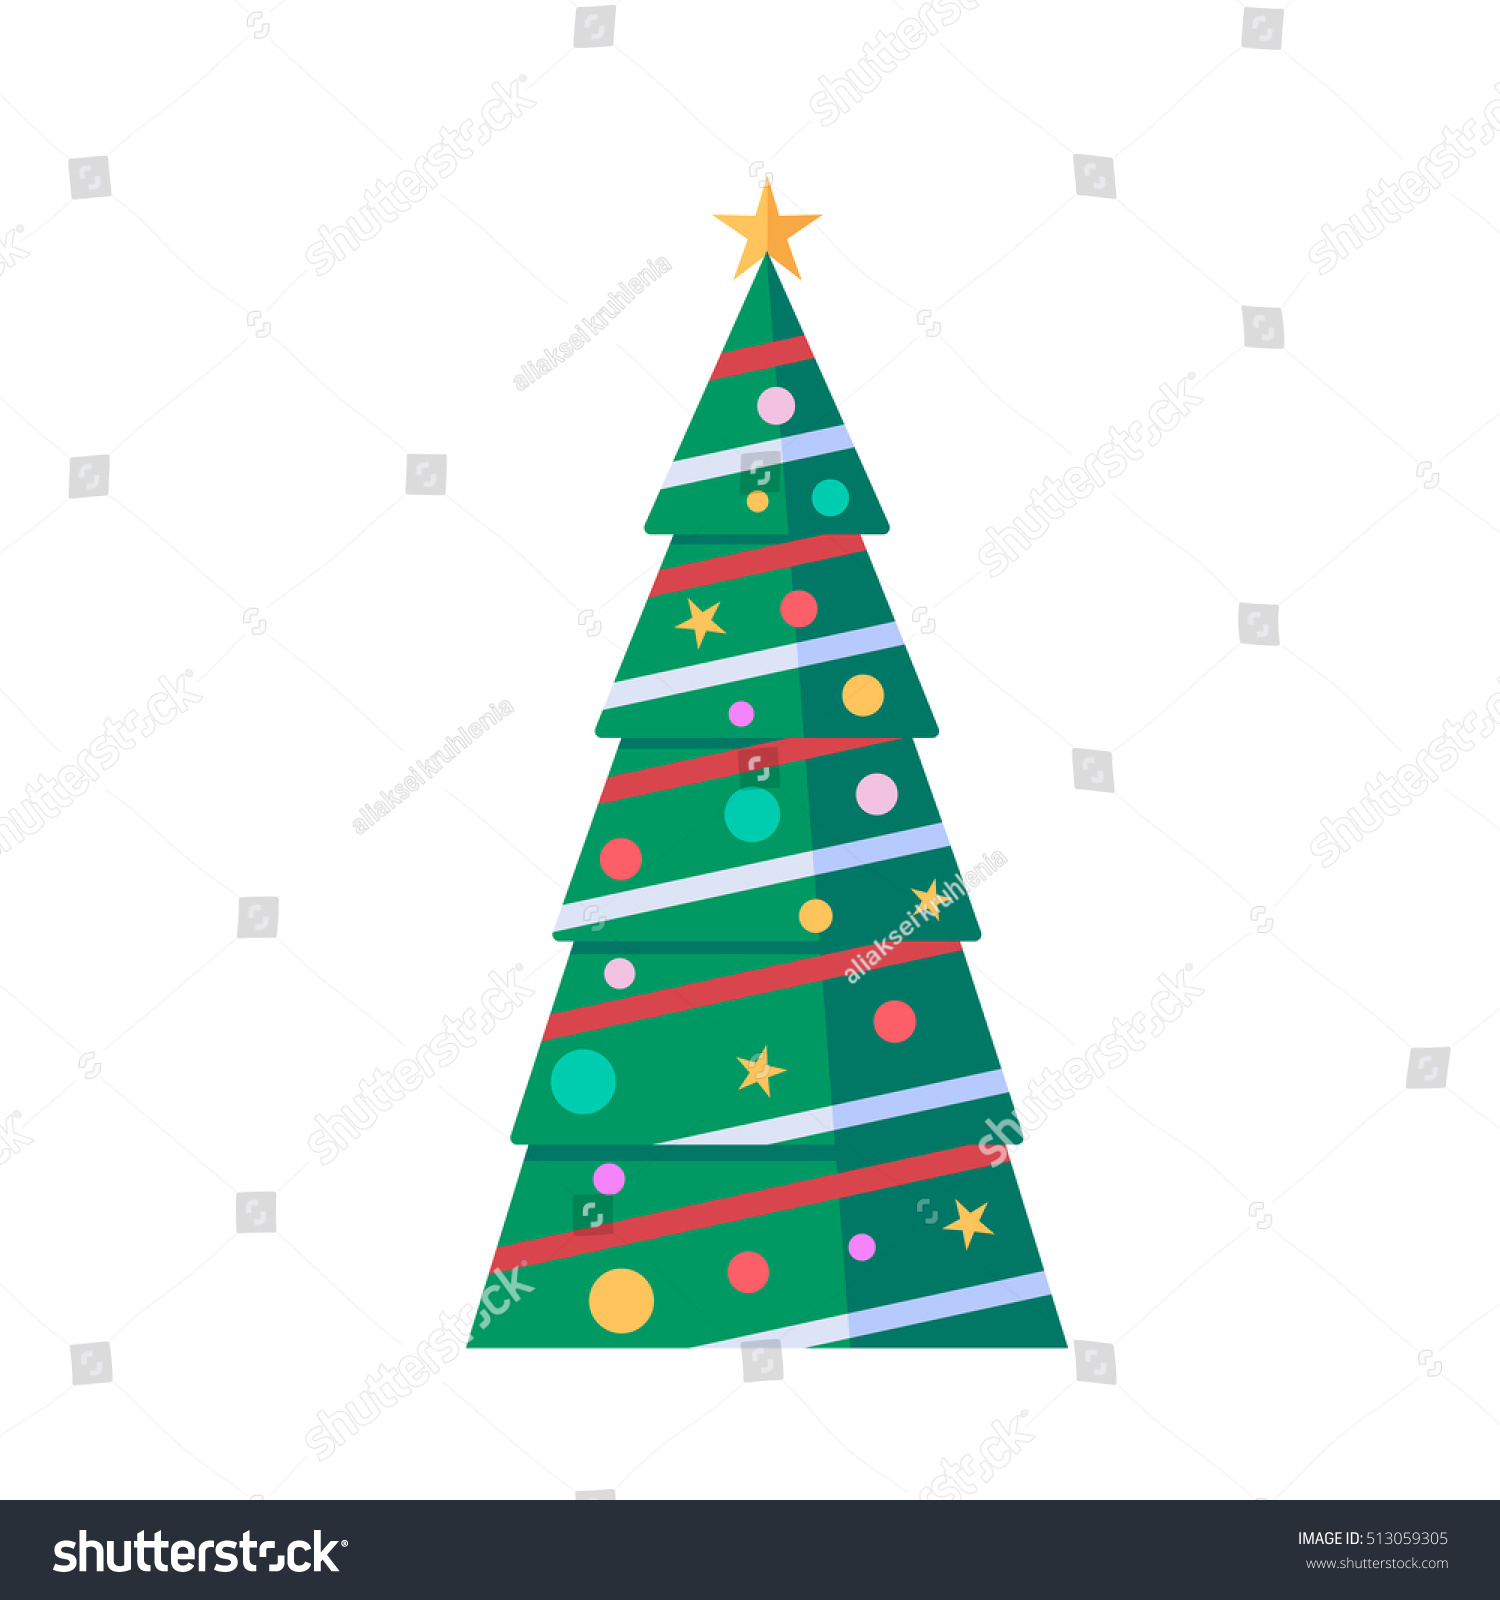 New year and christmas tree in flat design decorated pine